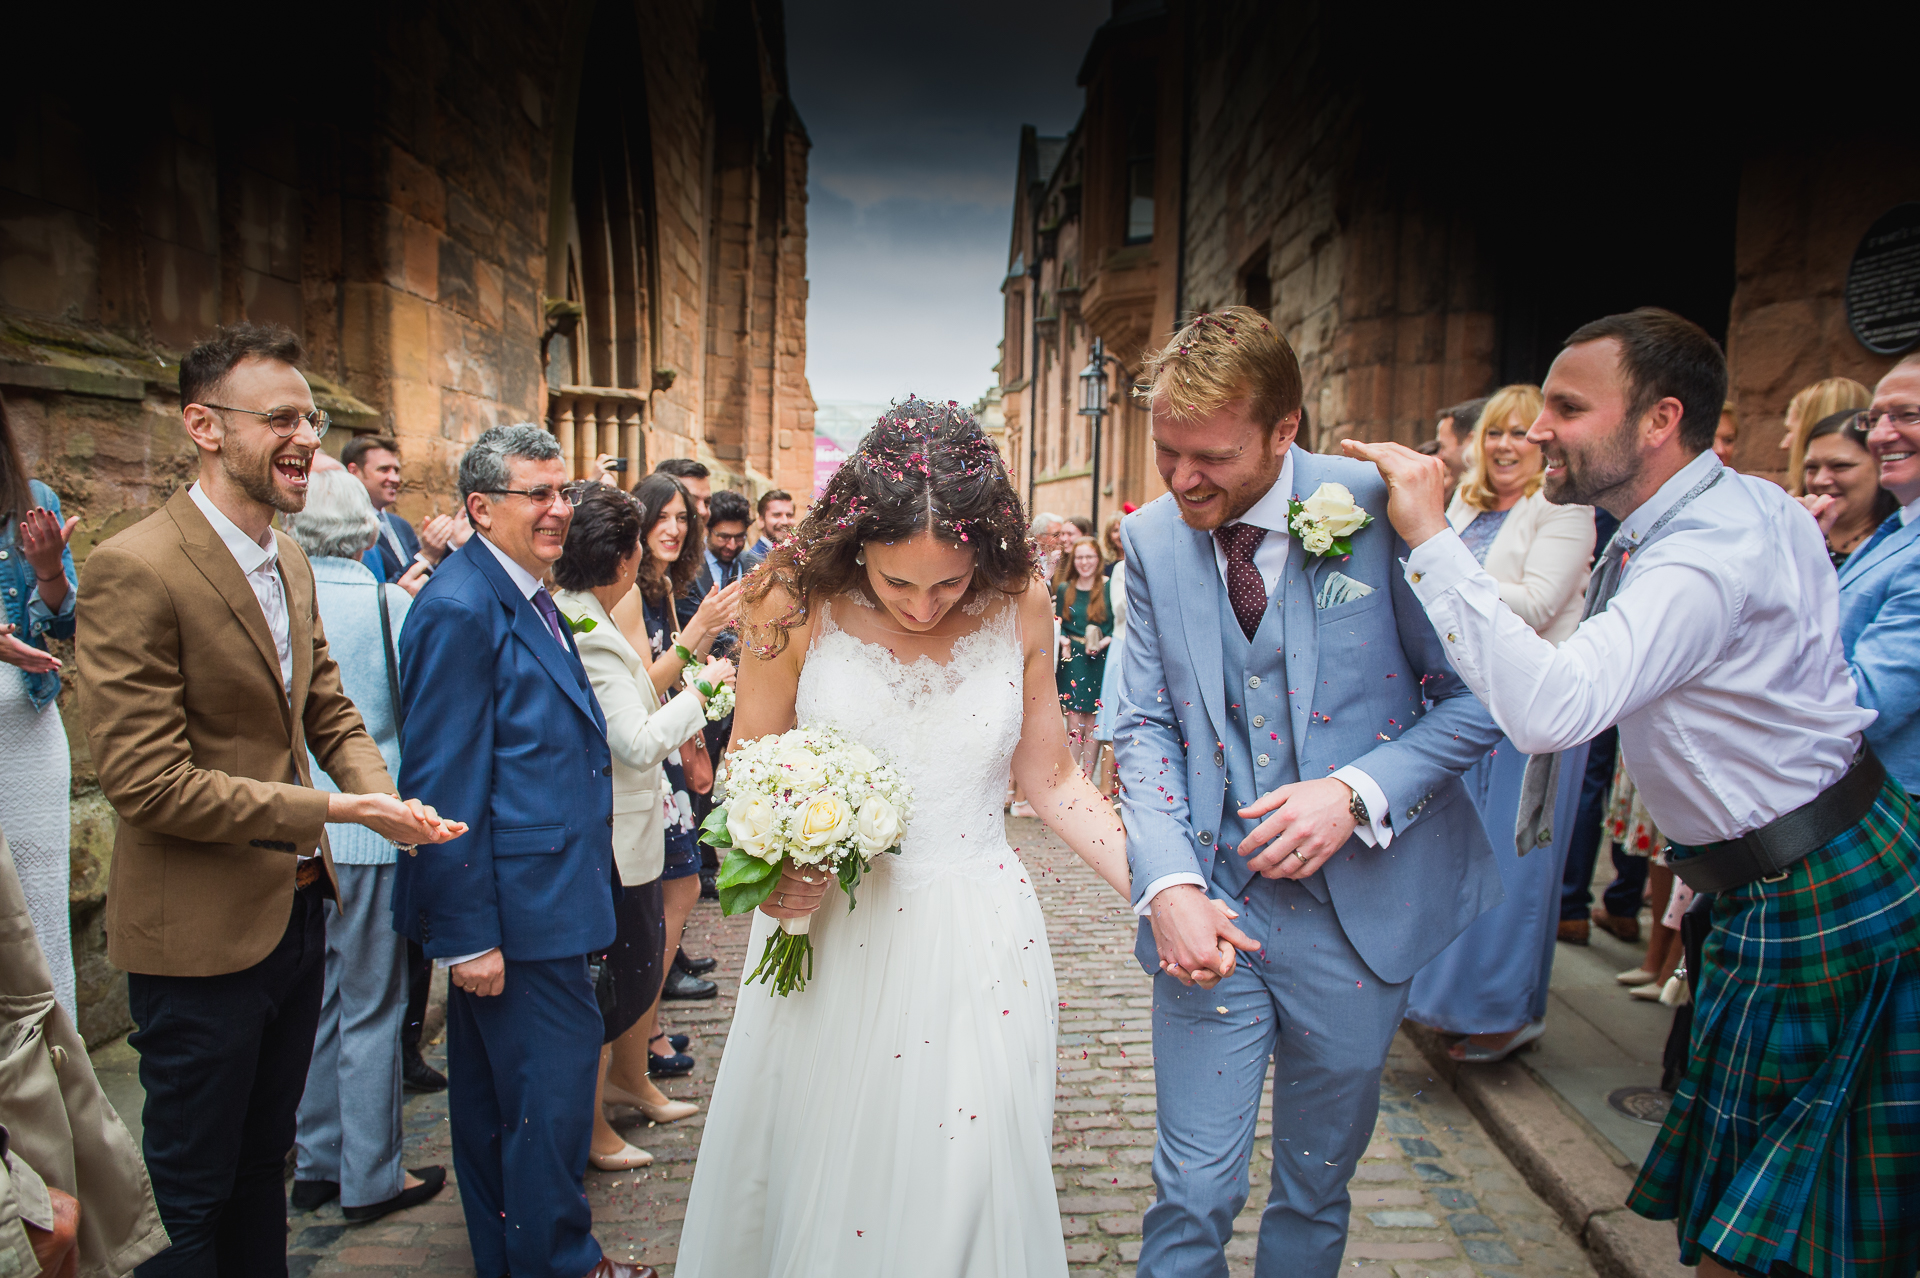 Wedding photography at St Marry Guild Hall, West Midlands